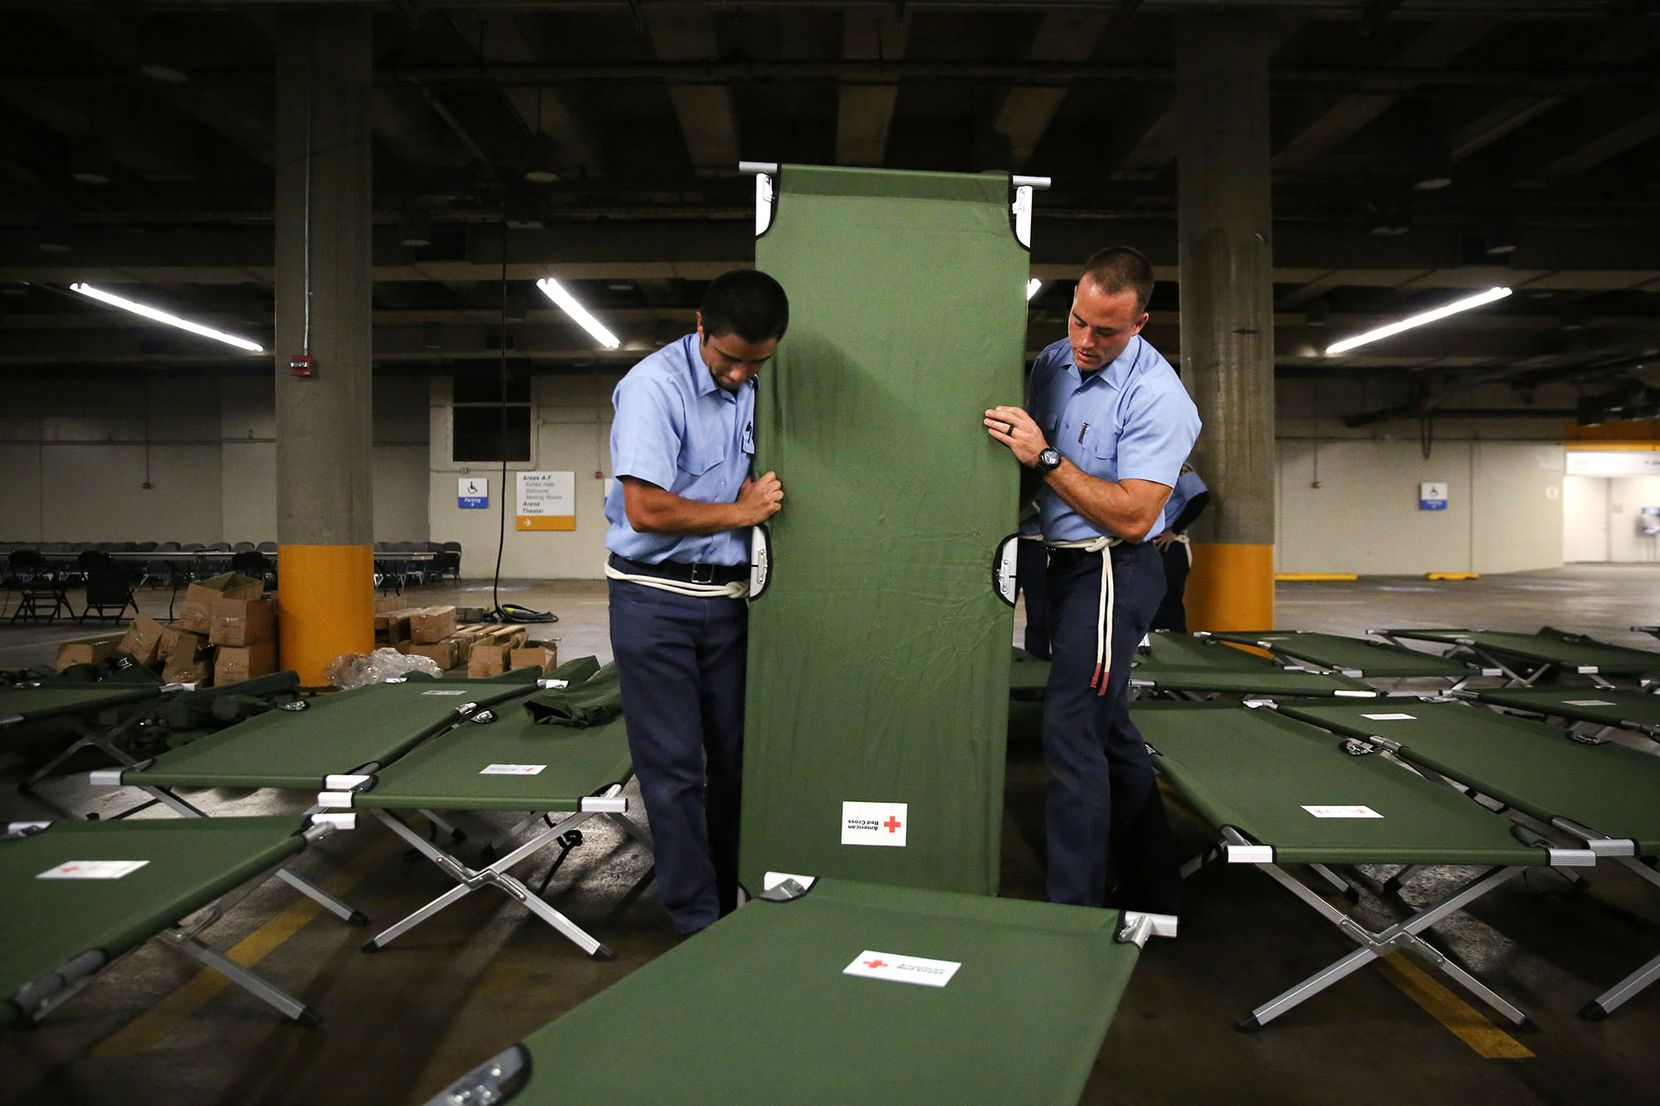 """Dallas Fire-Rescue recruits Marco Huerta (left) and Nathan Johnson help set up beds to house up to 5,000 Gulf Coast residents inside the """"mega shelter"""" at the Kay Bailey Hutchison Convention Center in Dallas on Monday, Aug. 28, 2017."""